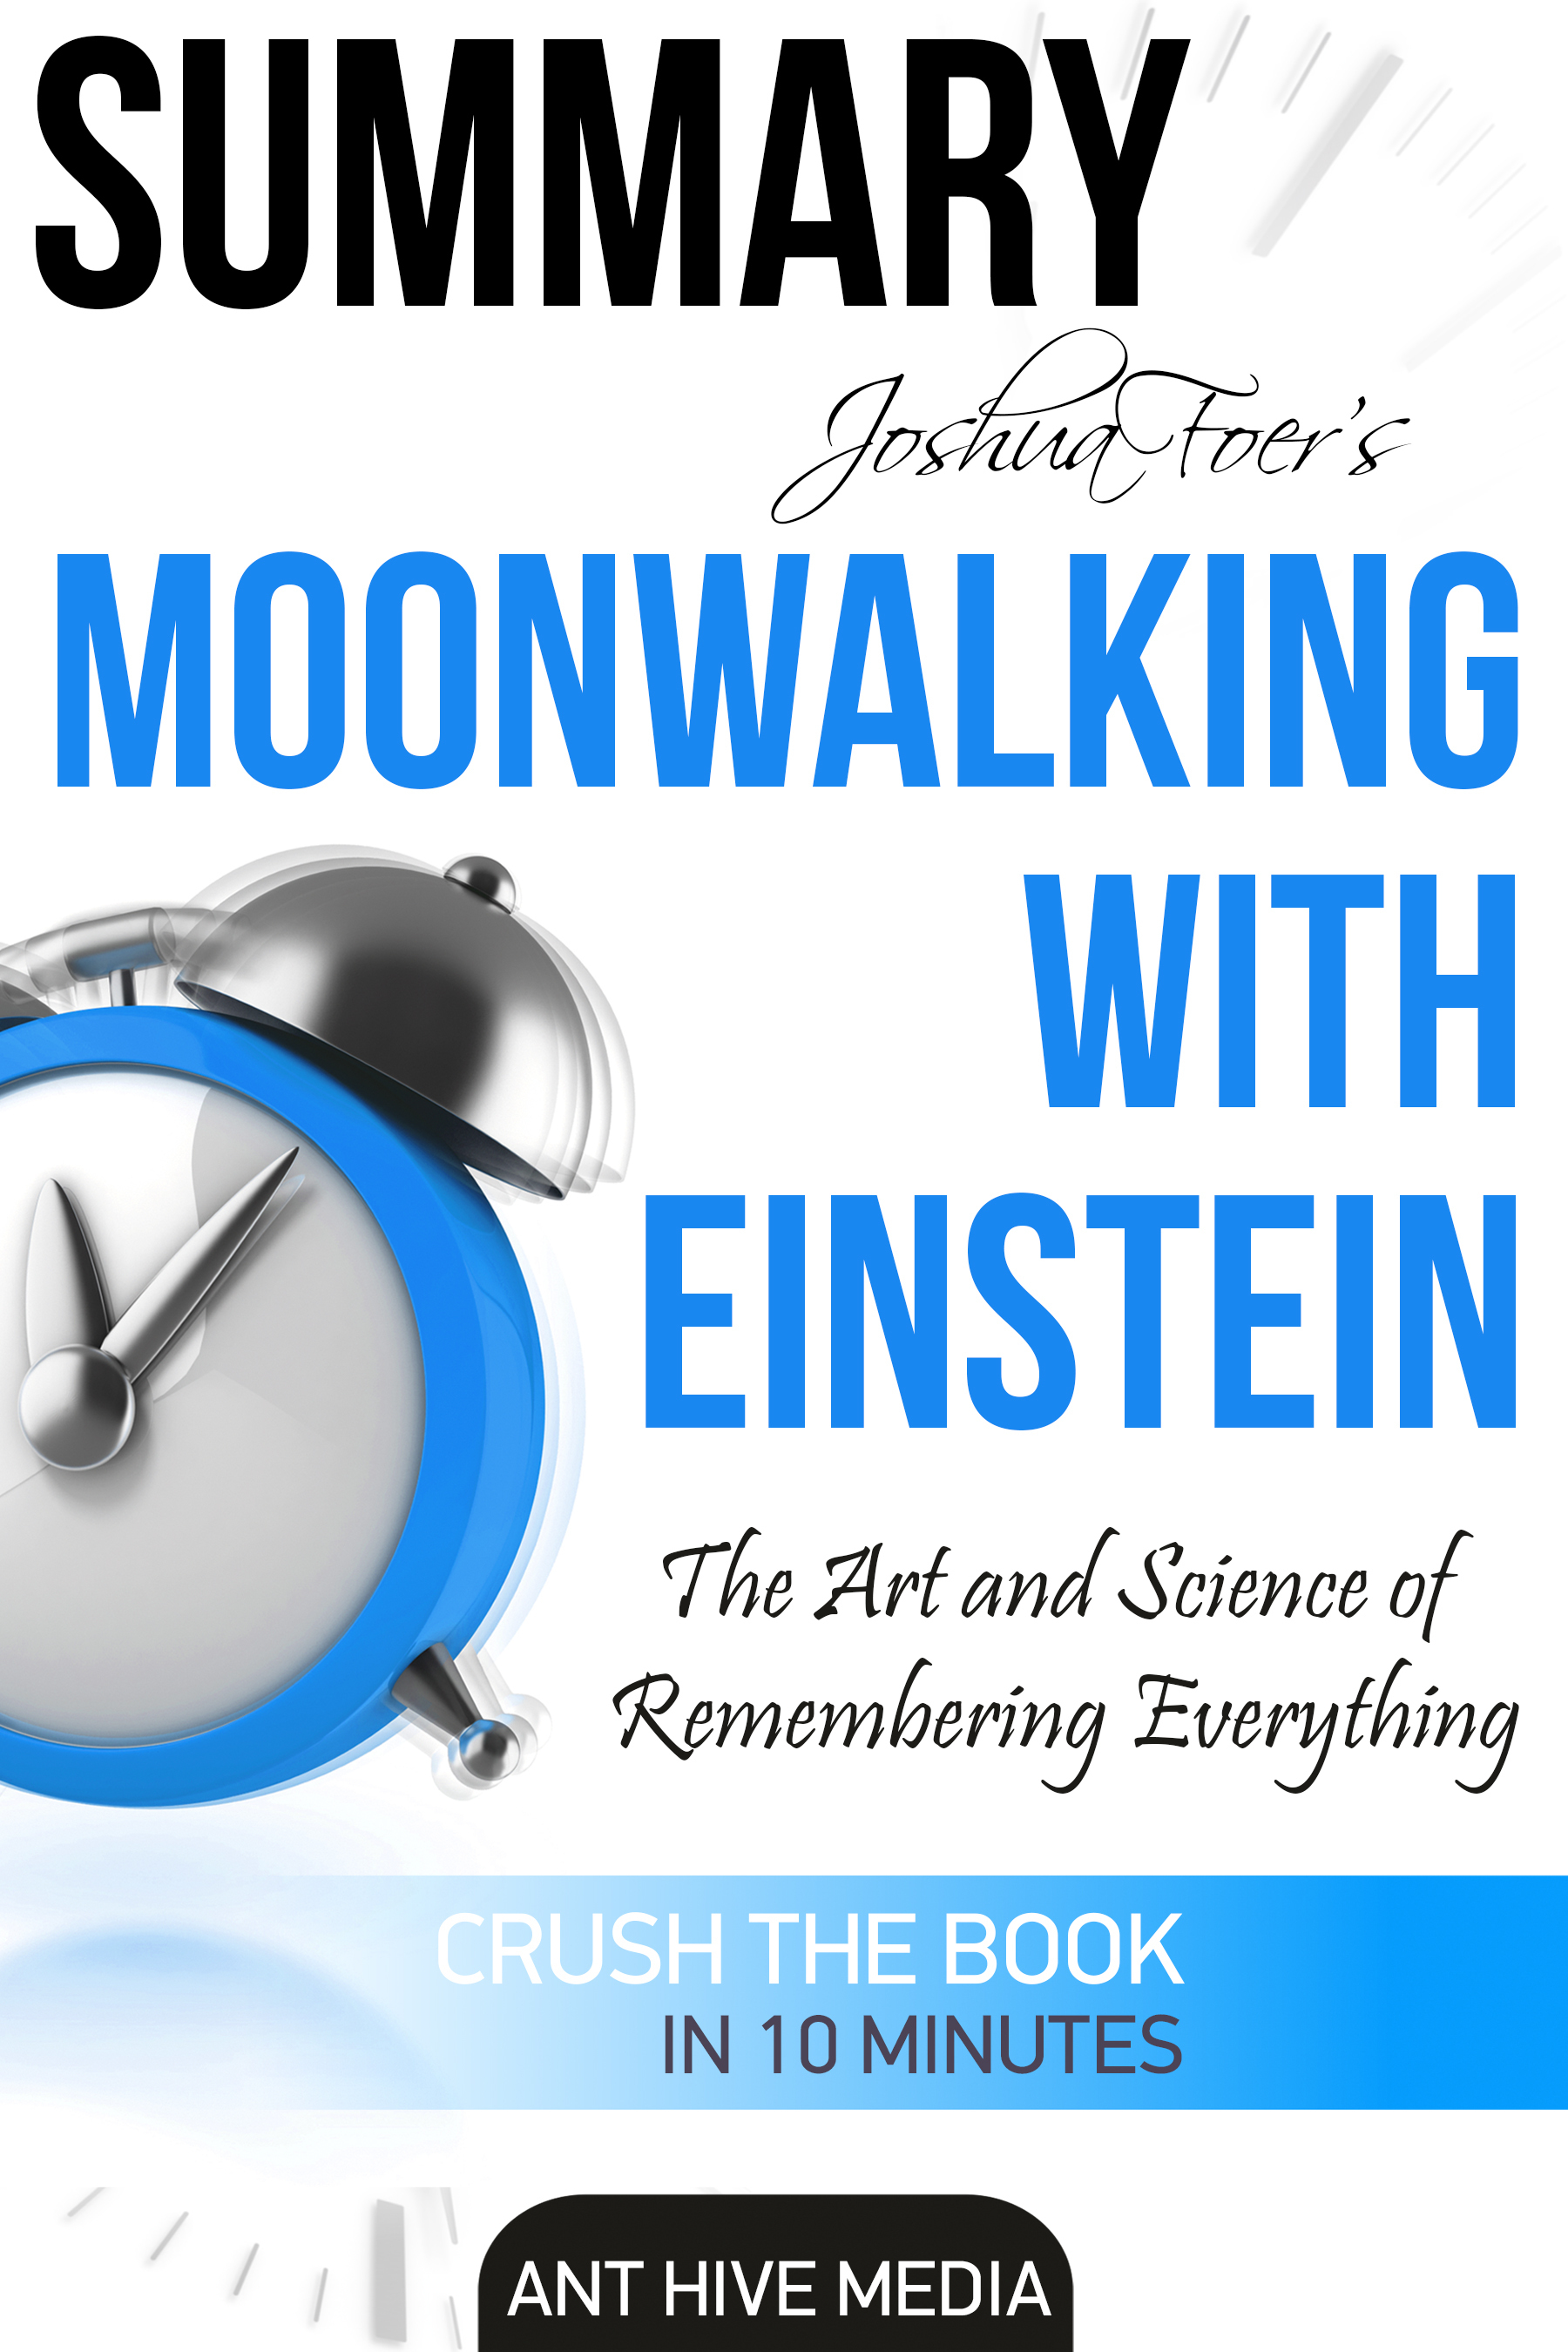 Joshua Foer's Moonwalking with Einstein The Art and Science Of Remembering Everything | Summary